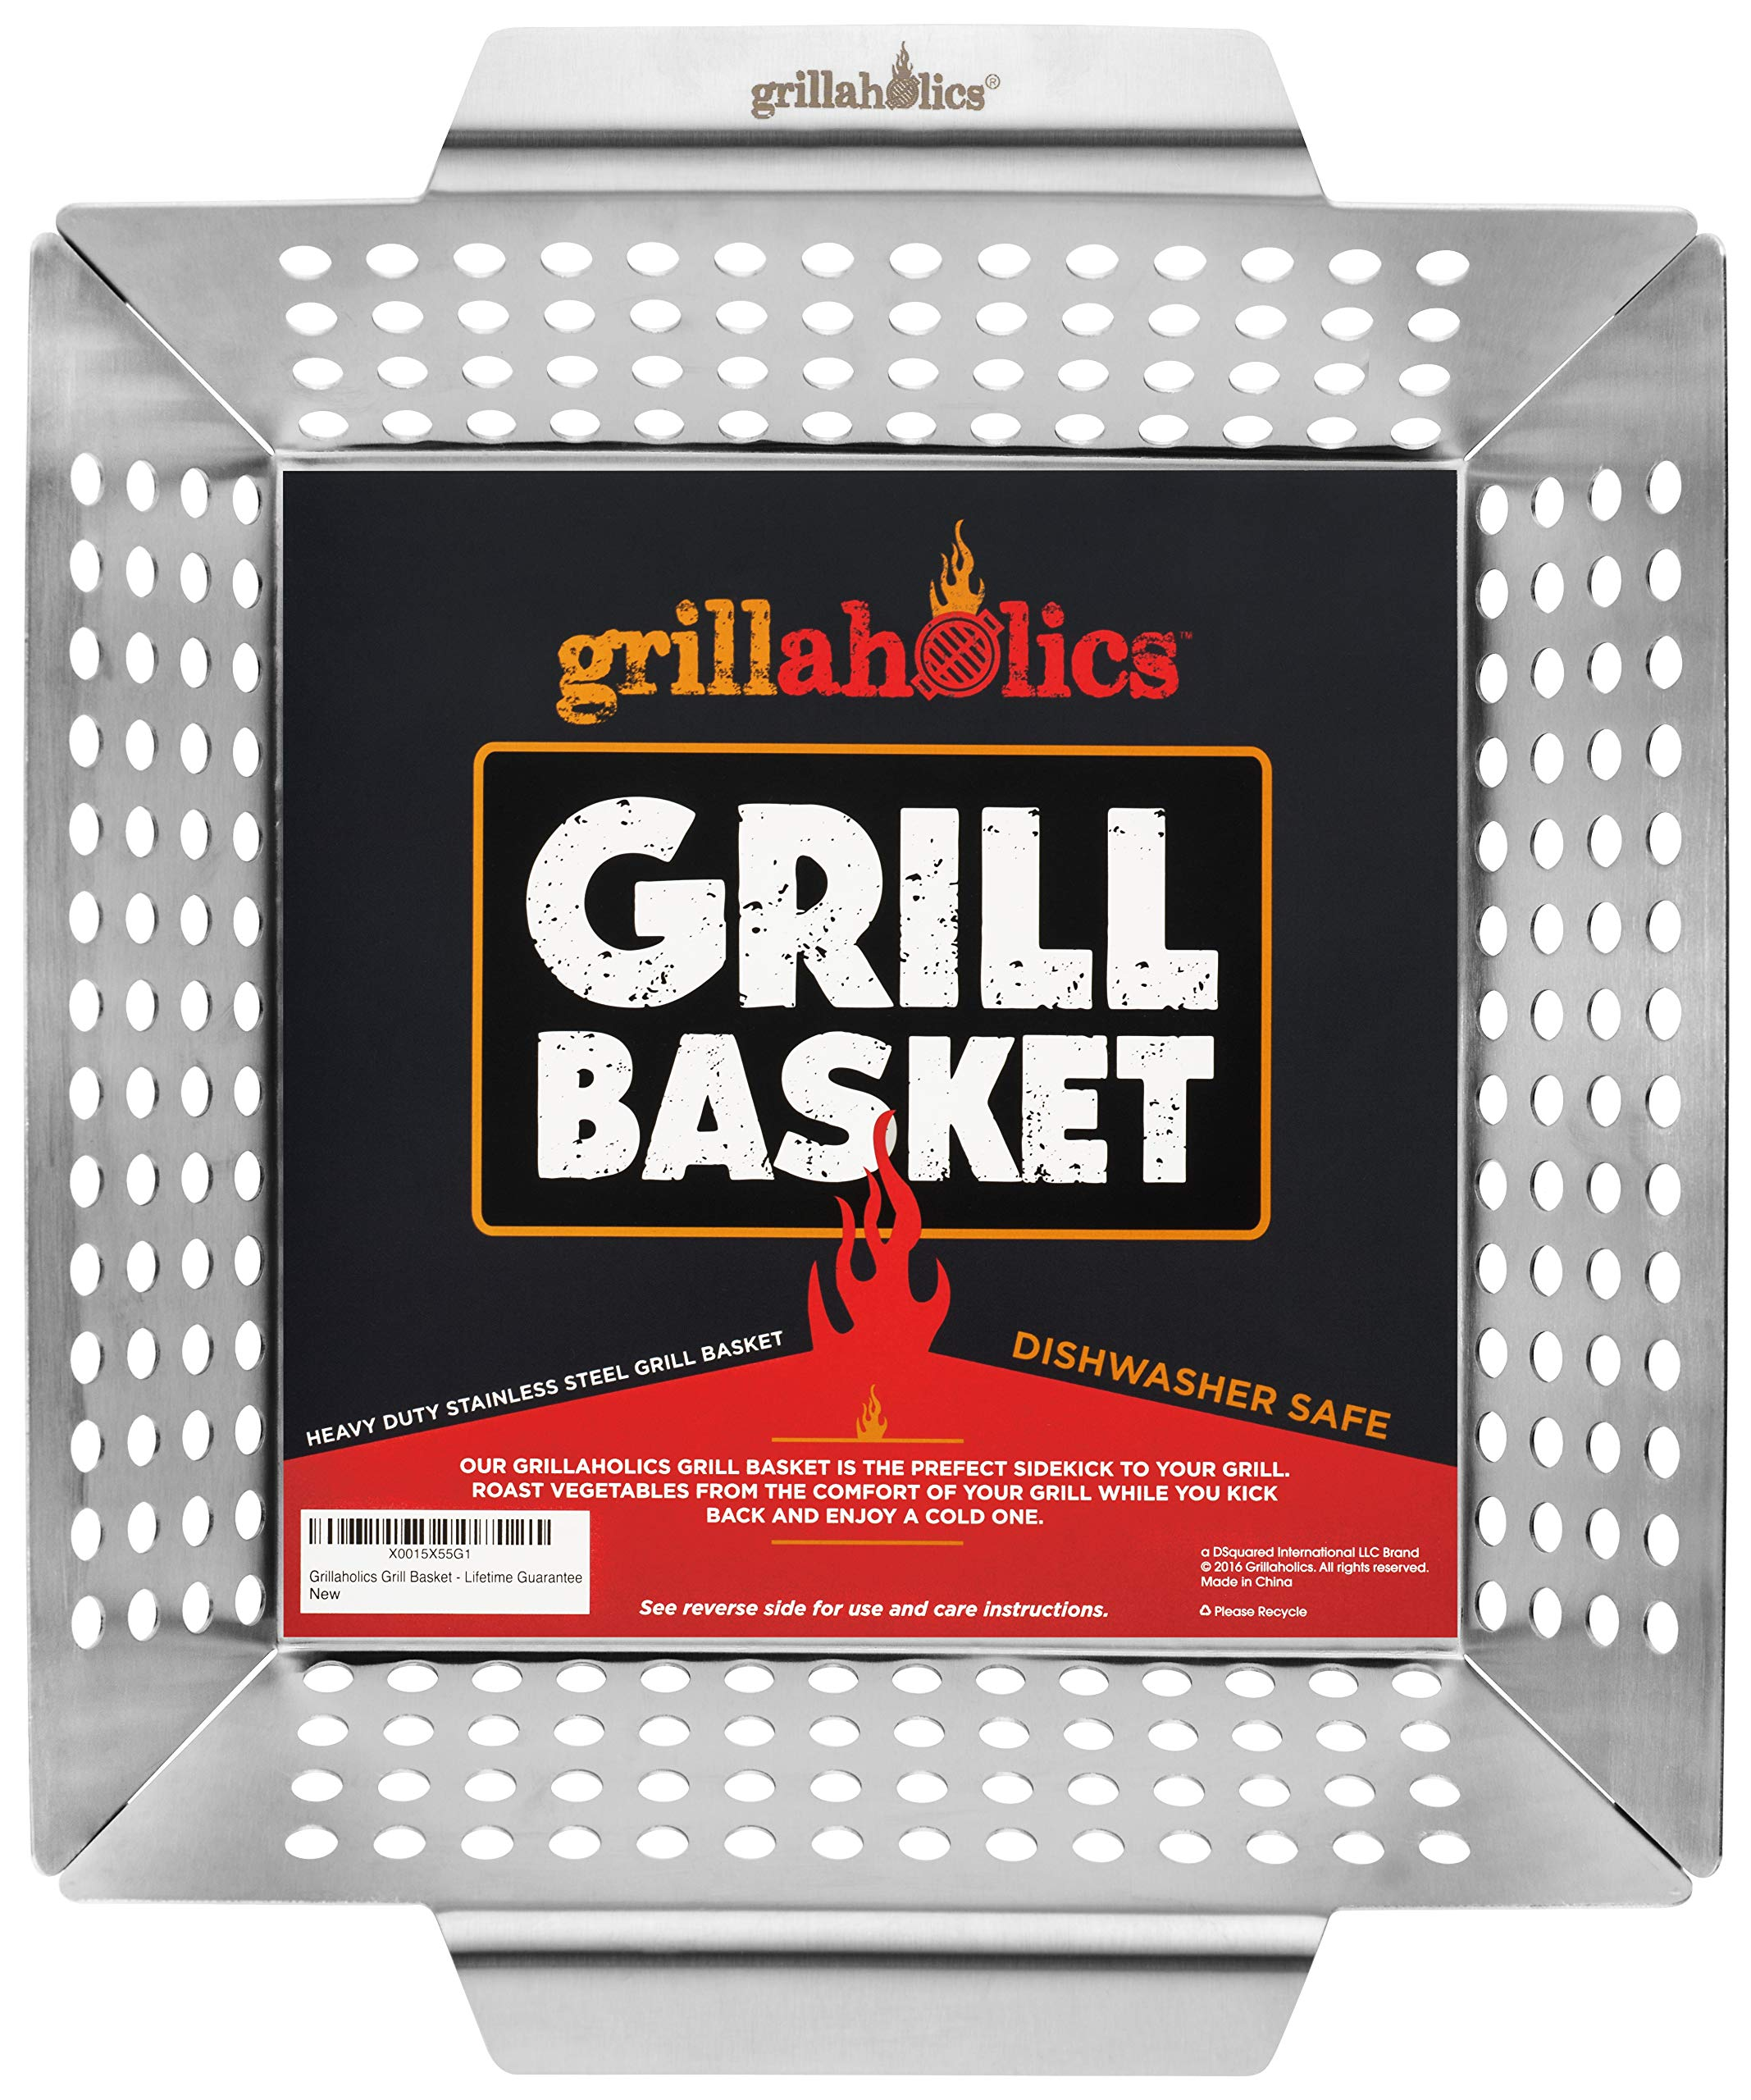 Grillaholics Grill Basket - Large Grilling Basket for More Vegetables - Heavy Duty Stainless Steel Grilling Accessories Built to Last - Perfect Vegetable Grill Basket for All Grills and Veggies by Grillaholics